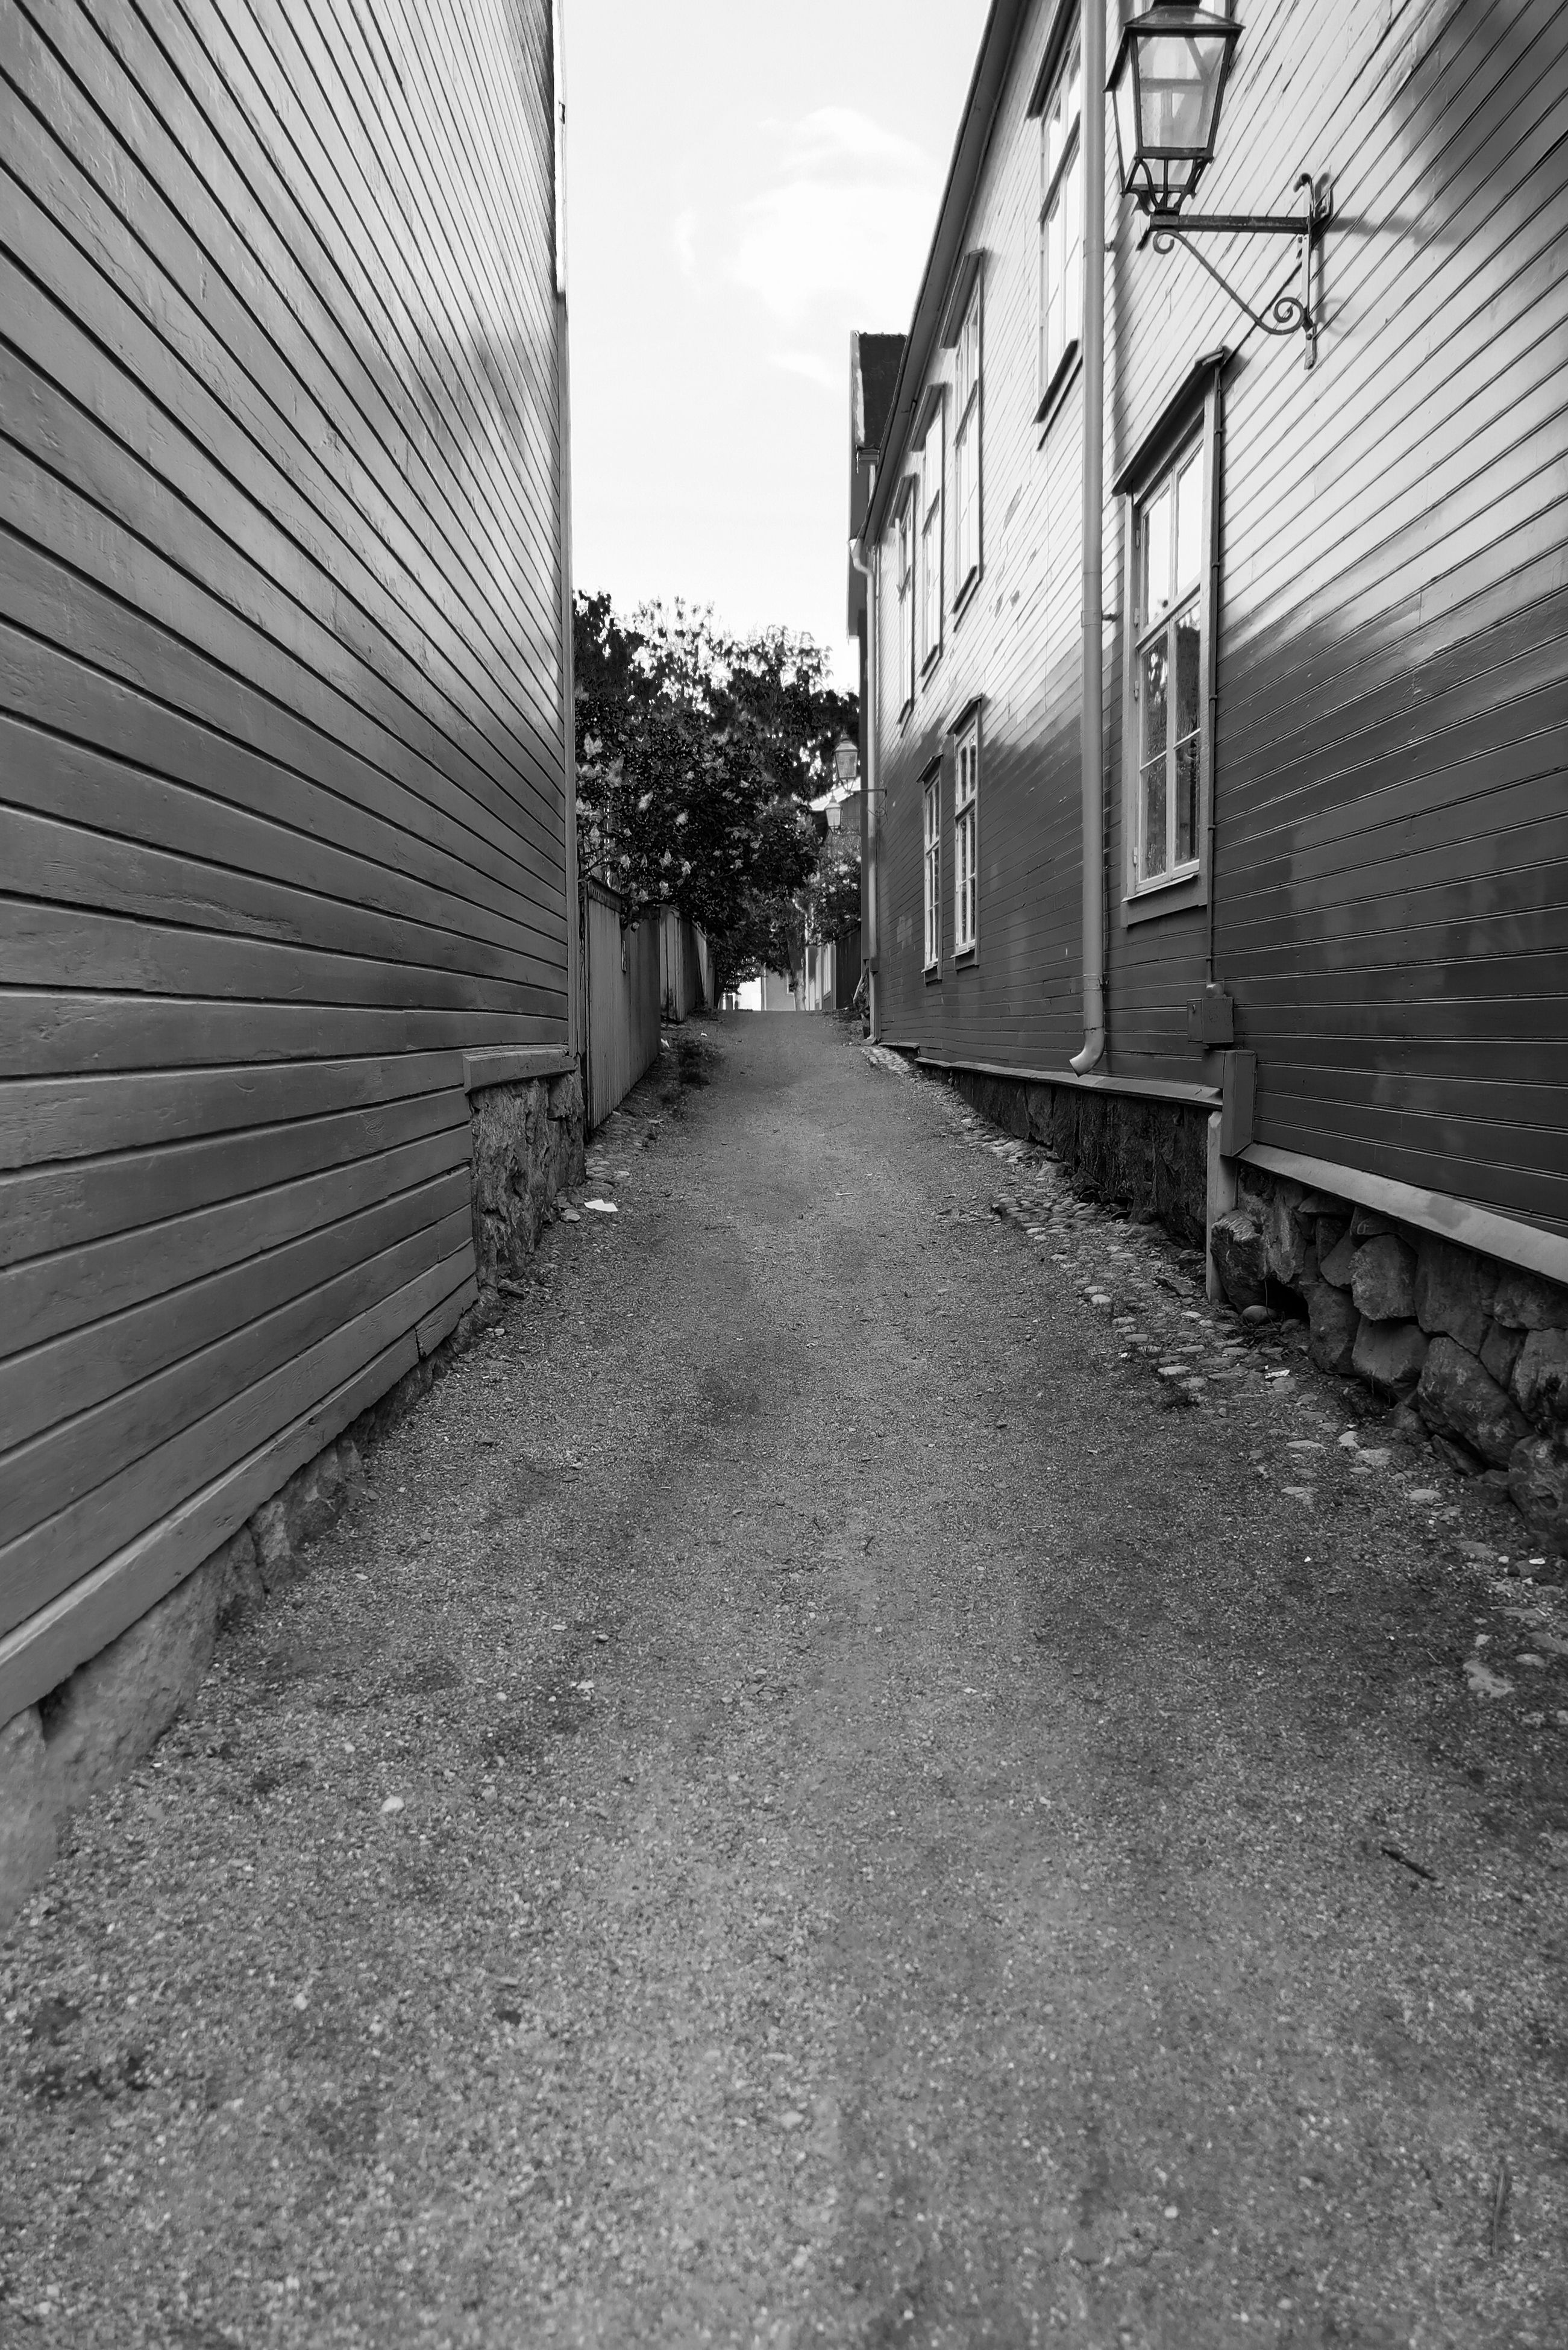 architecture, building exterior, built structure, the way forward, diminishing perspective, vanishing point, narrow, building, residential structure, house, sky, surface level, city, residential building, day, street, alley, outdoors, no people, long